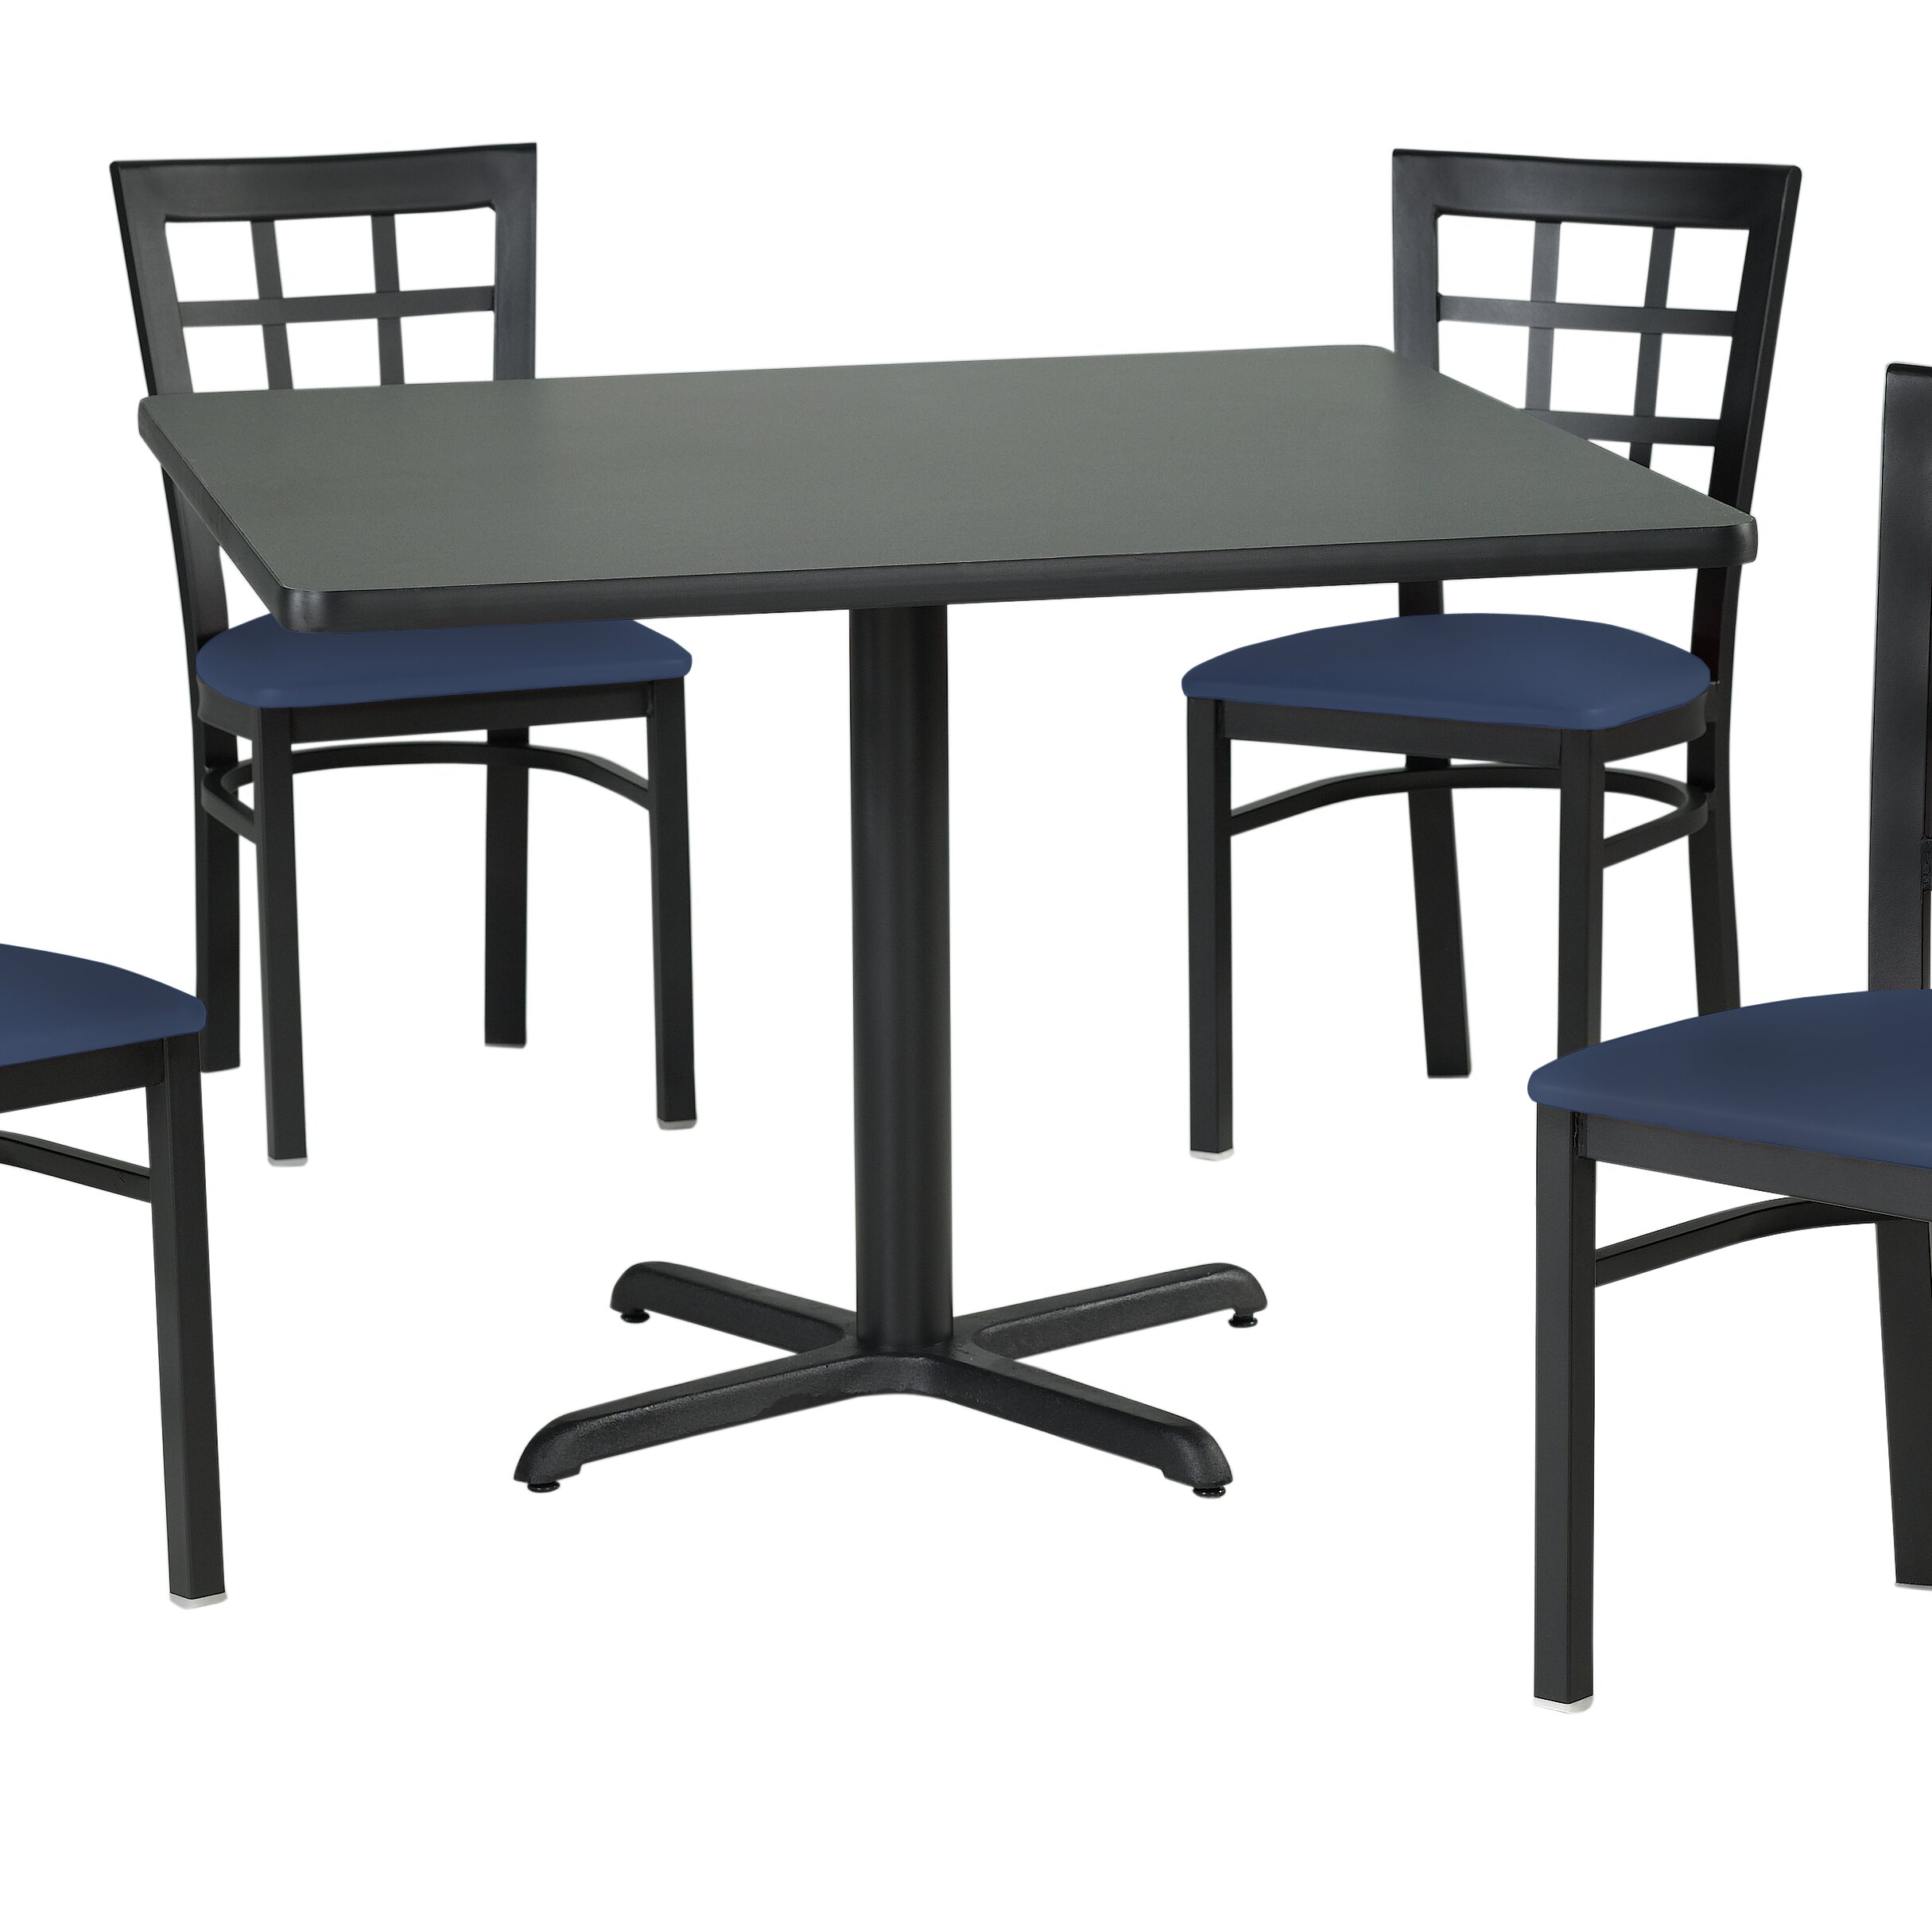 Premier hospitality furniture dining table wayfair for Table 85 restaurant menu